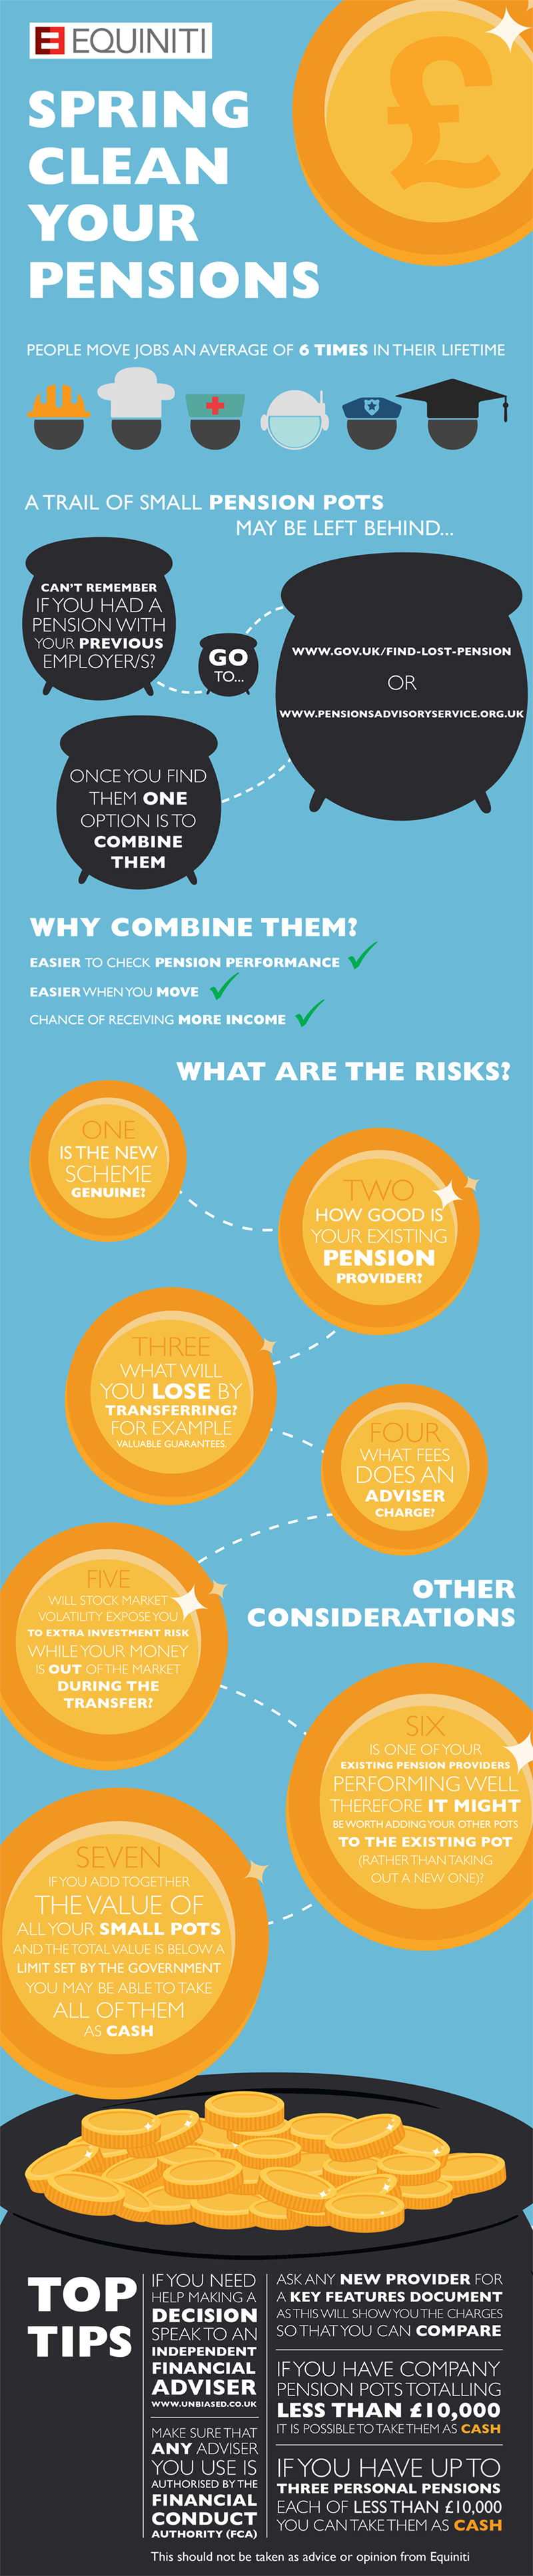 Sprin Clean Your Pensions Infographic